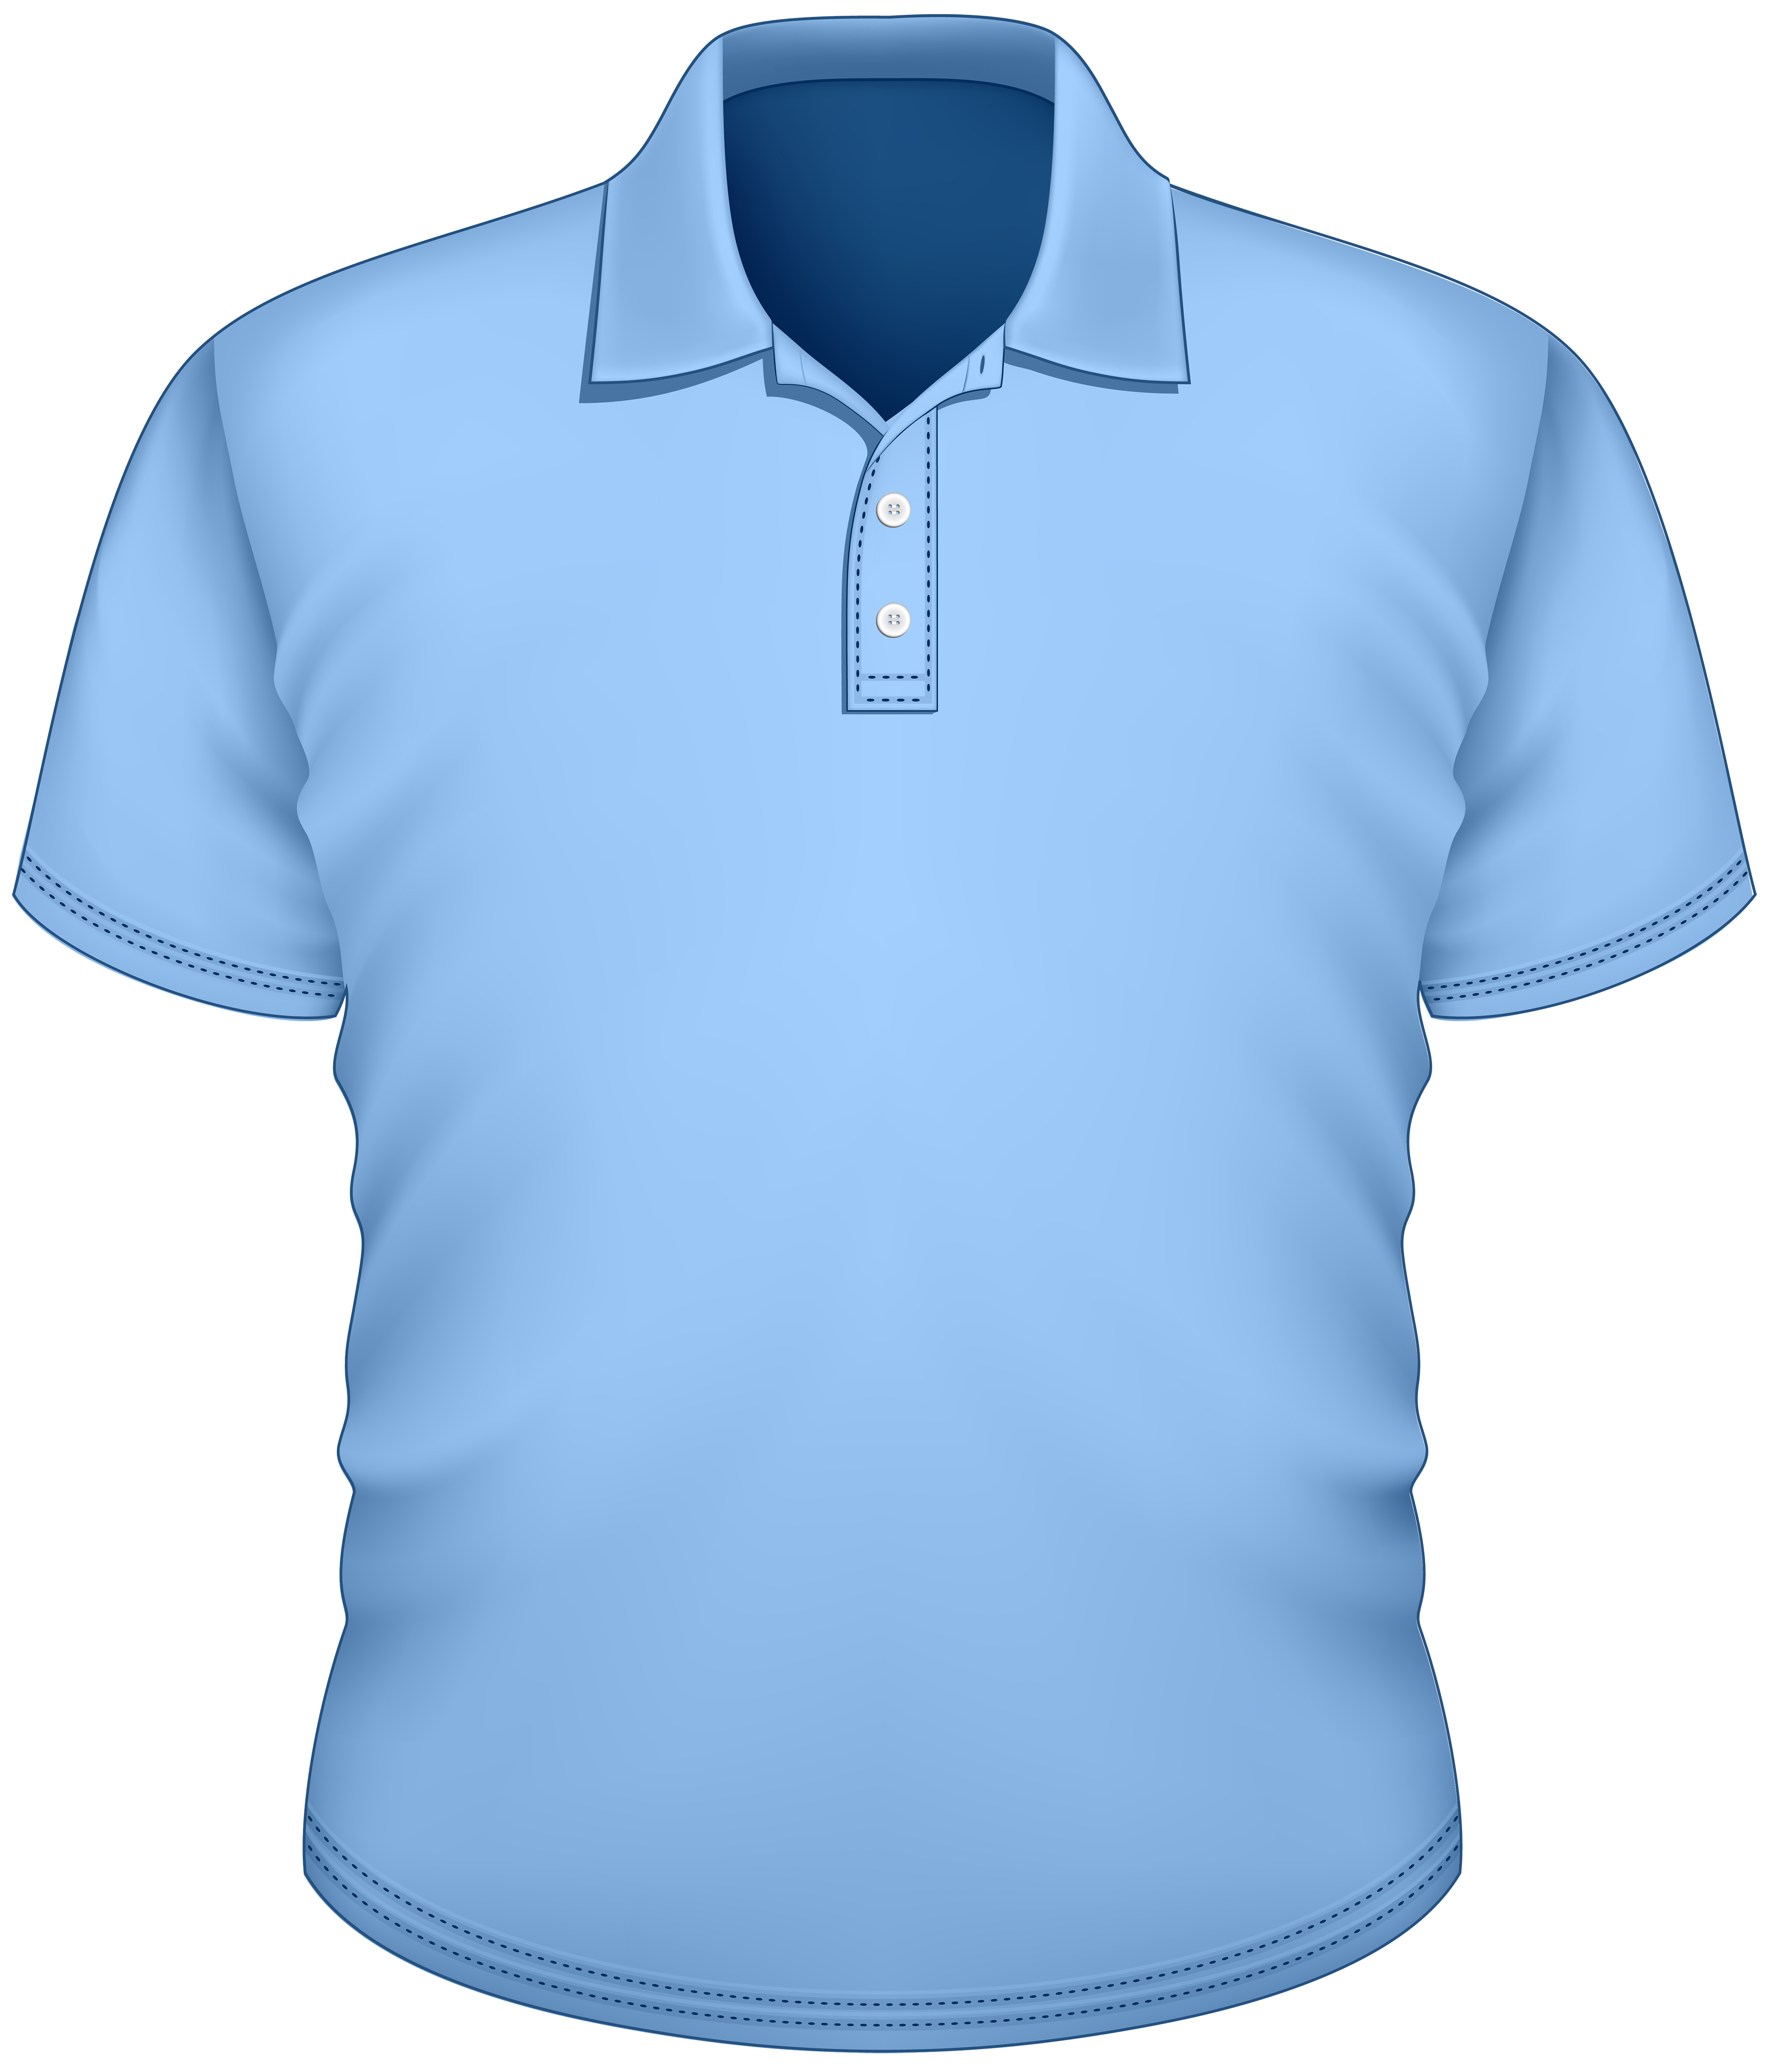 Male Blue Shirt PNG Clipart.